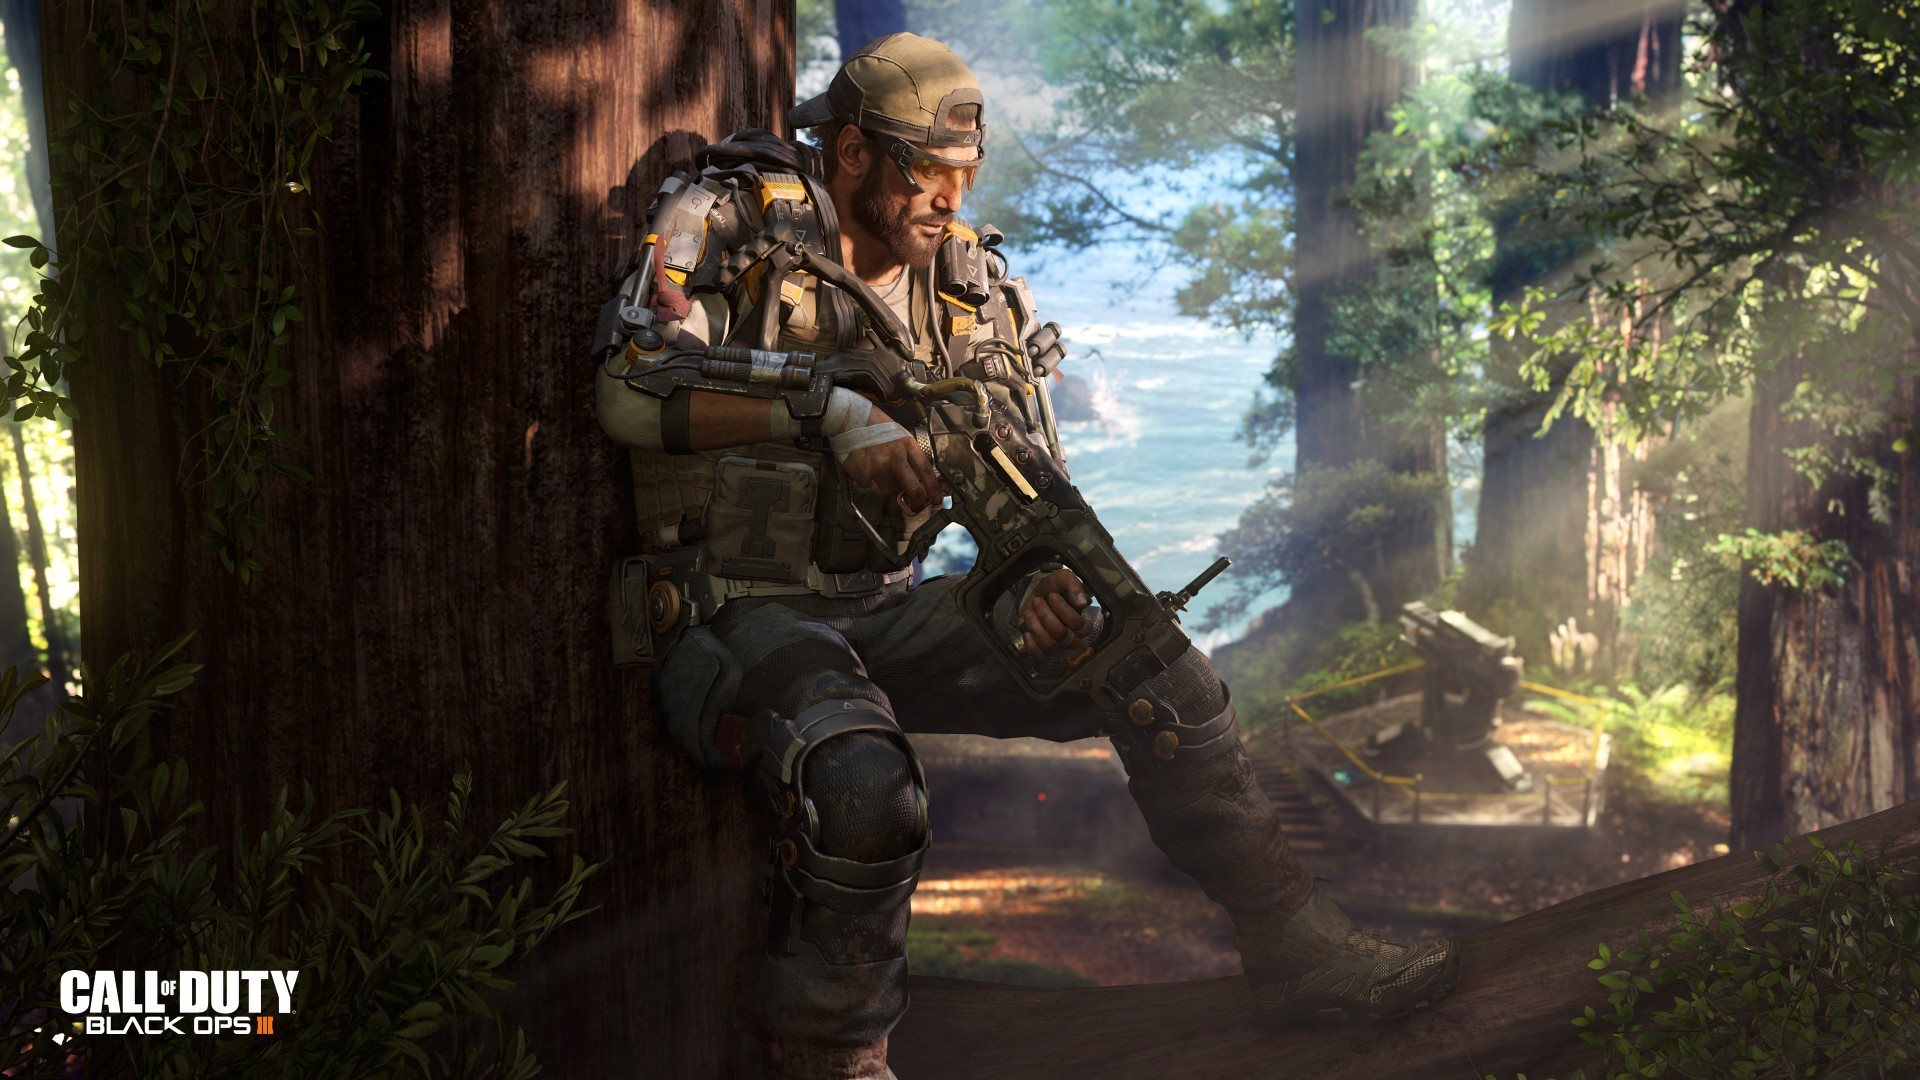 Apple 3d Hd Wallpaper For Iphone Call Of Duty Black Ops 3 Specialist Nomad Wallpapers Hd